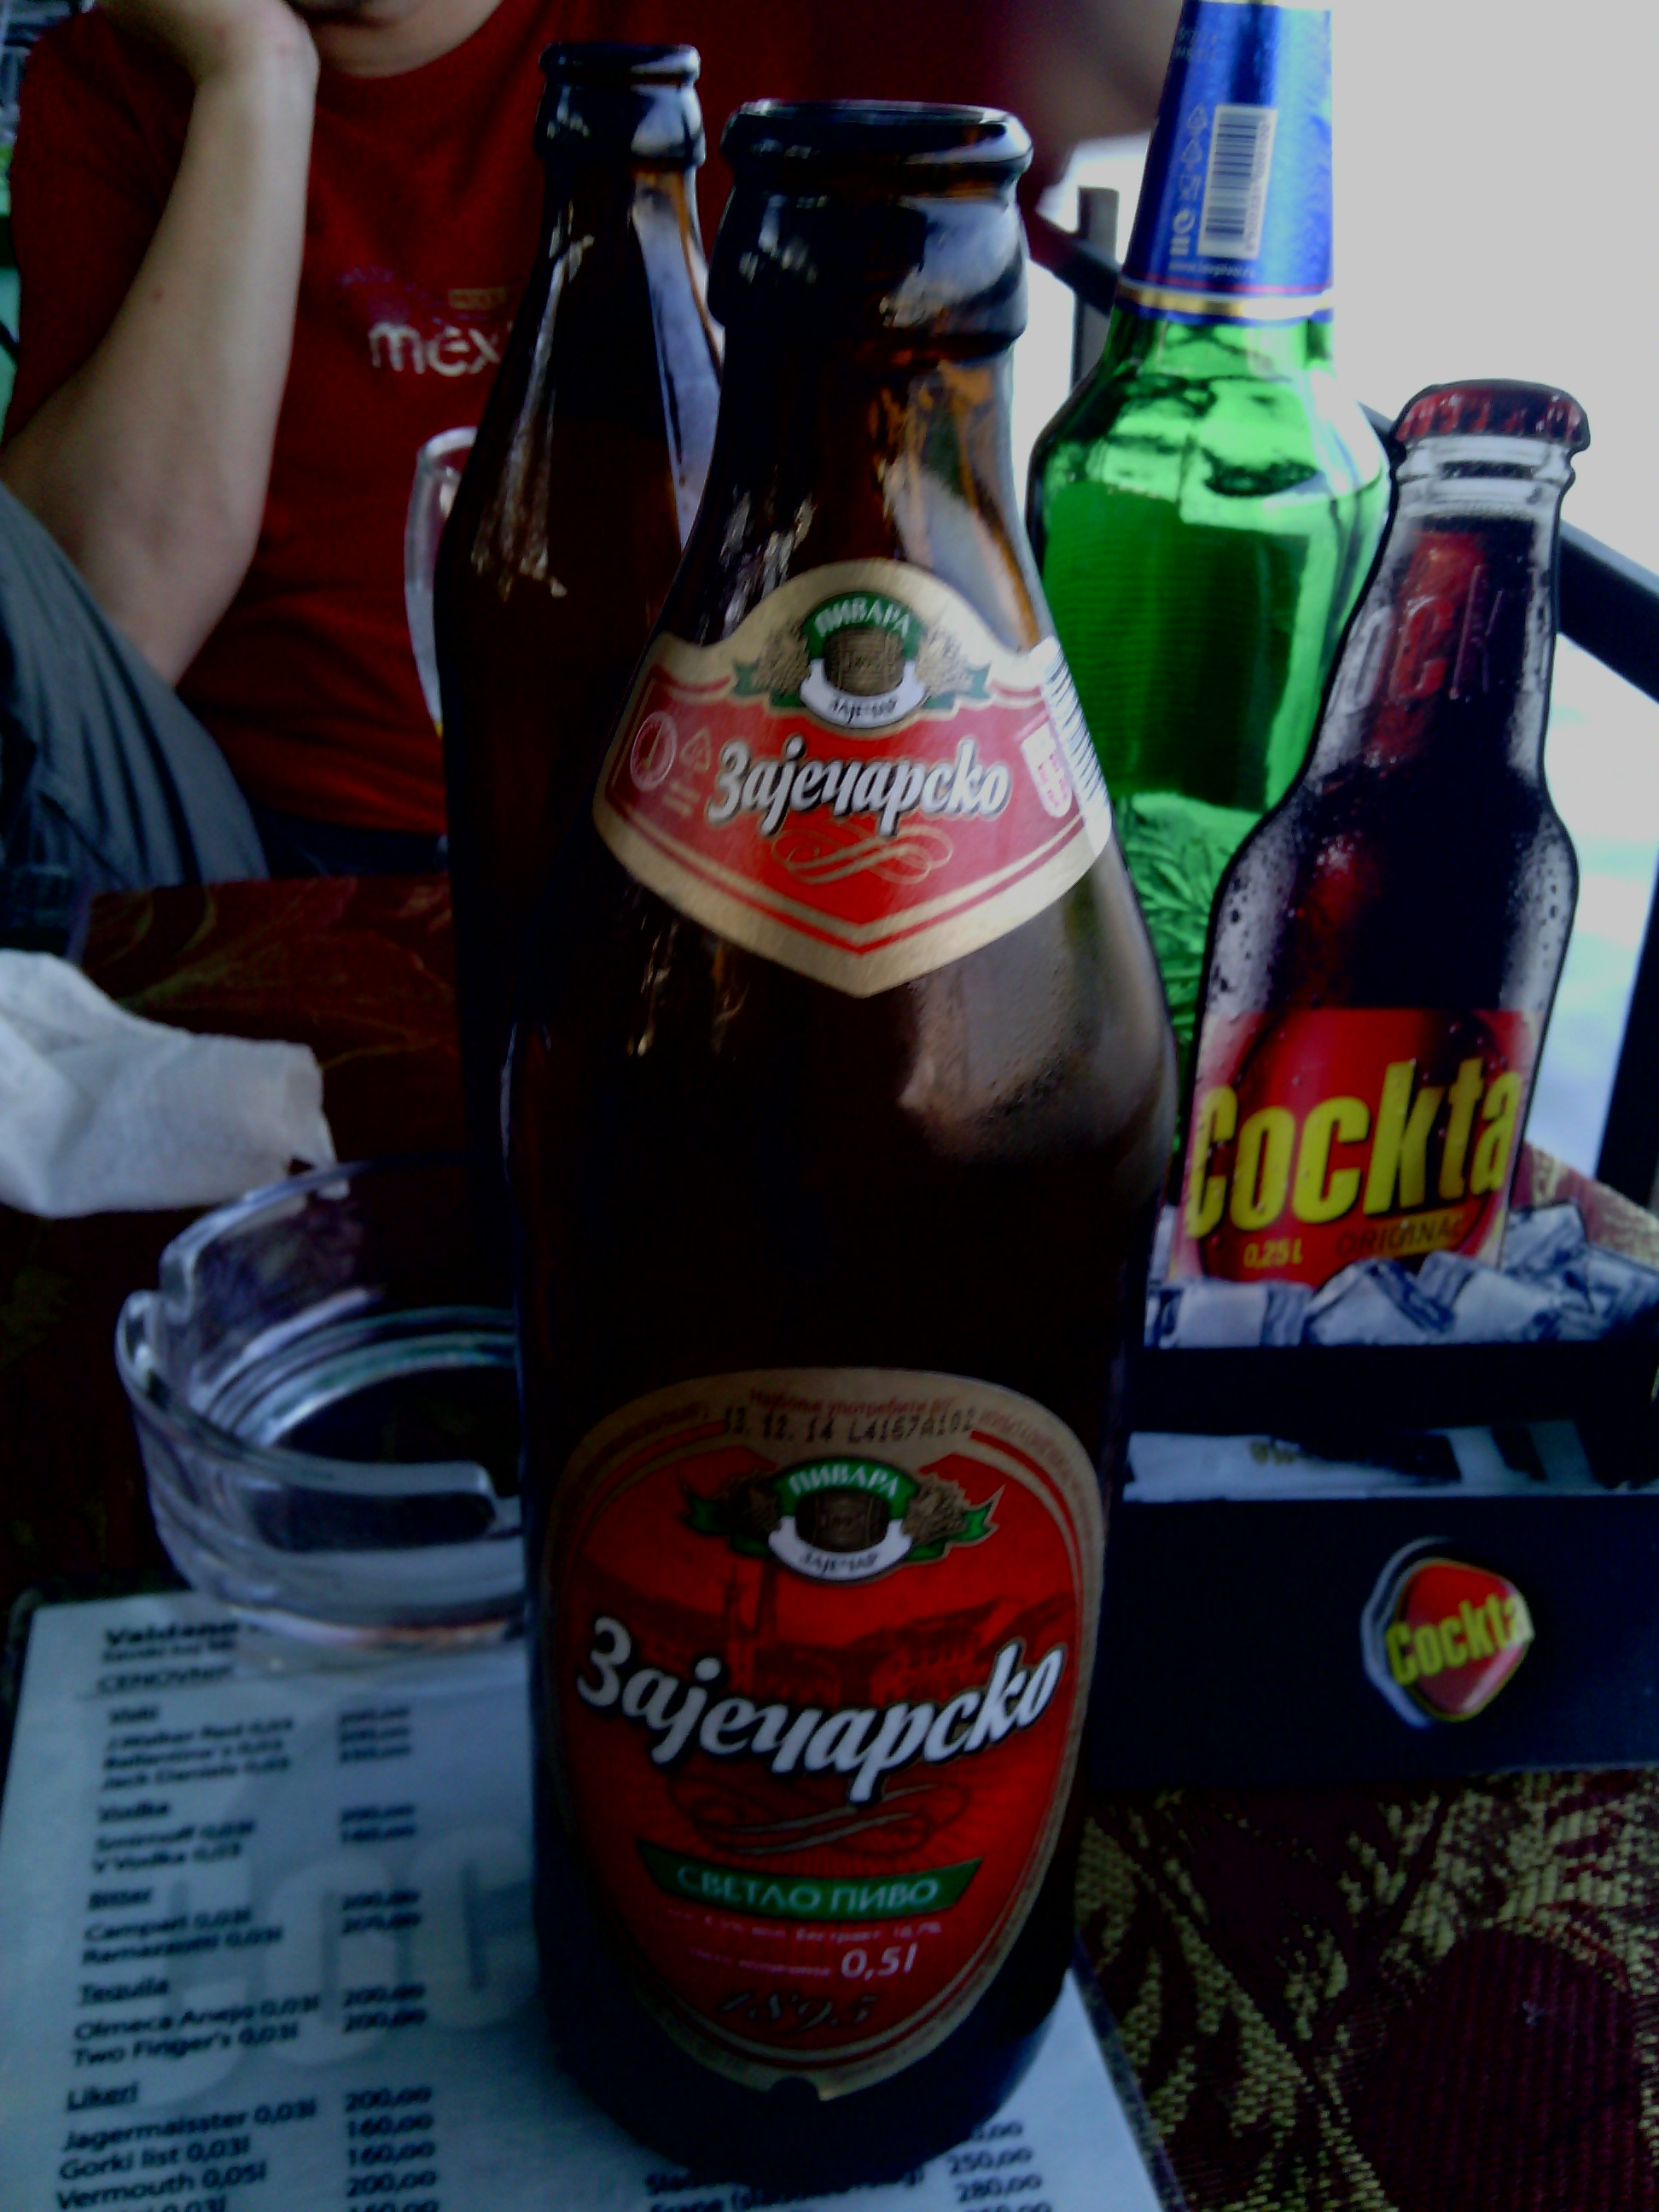 Rabbit drink / Zaicharsko Serbian beer